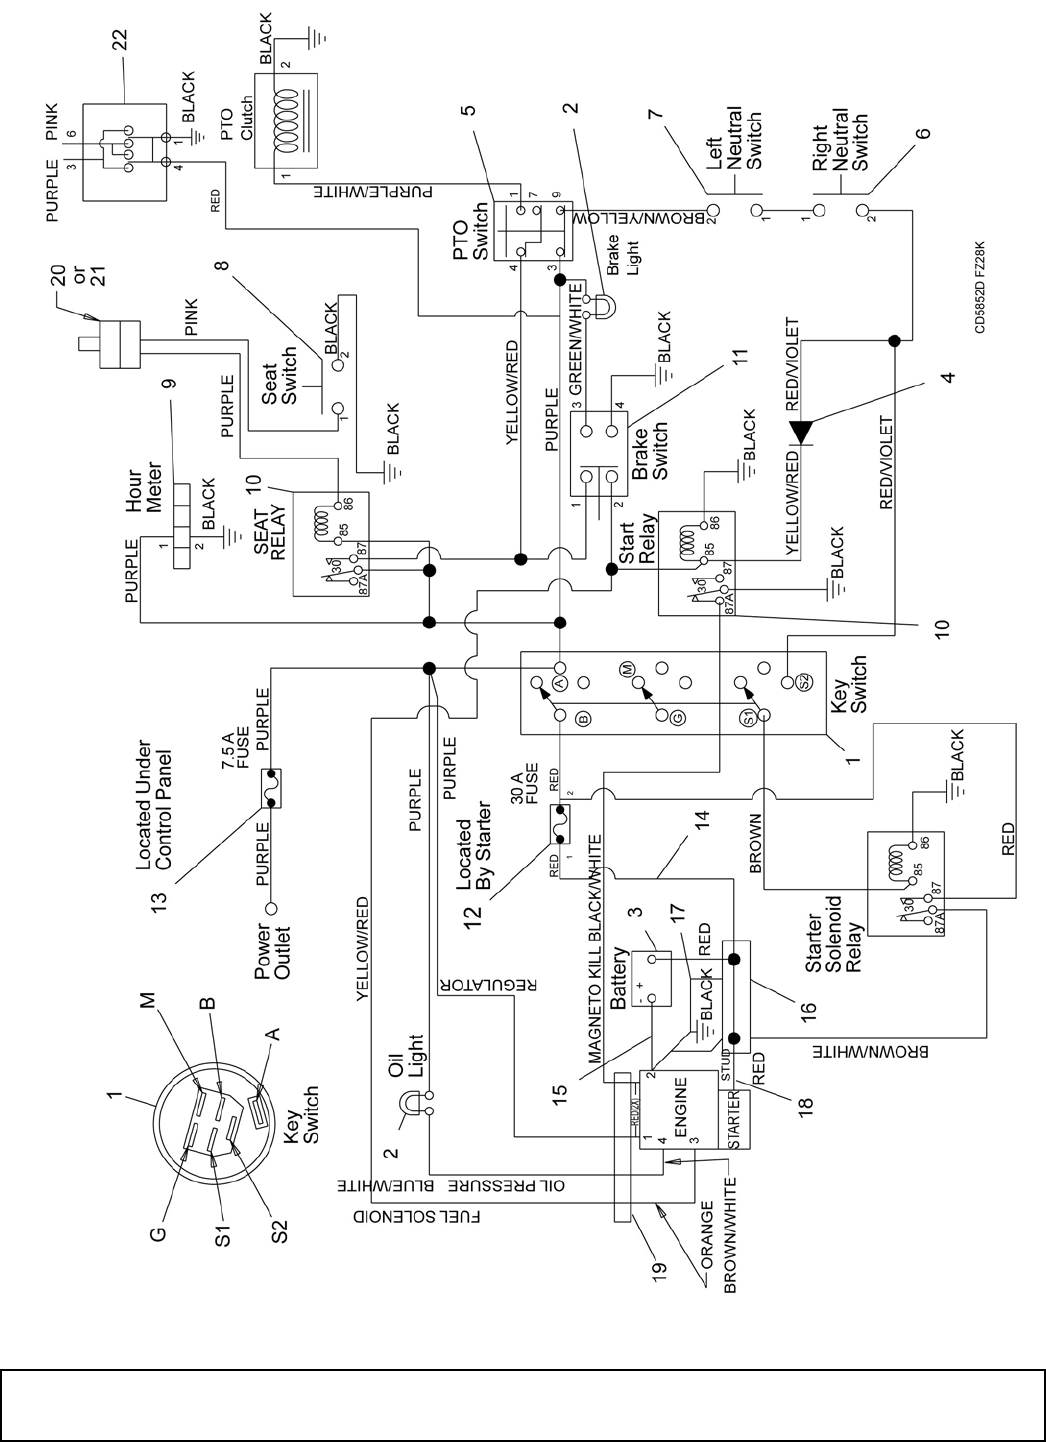 page 48 of woods equipment lawn mower fz28k user guide rh lawnandgarden manualsonline com Troy-Bilt Wiring Diagrams Murray Lawn Mower Wiring Diagram